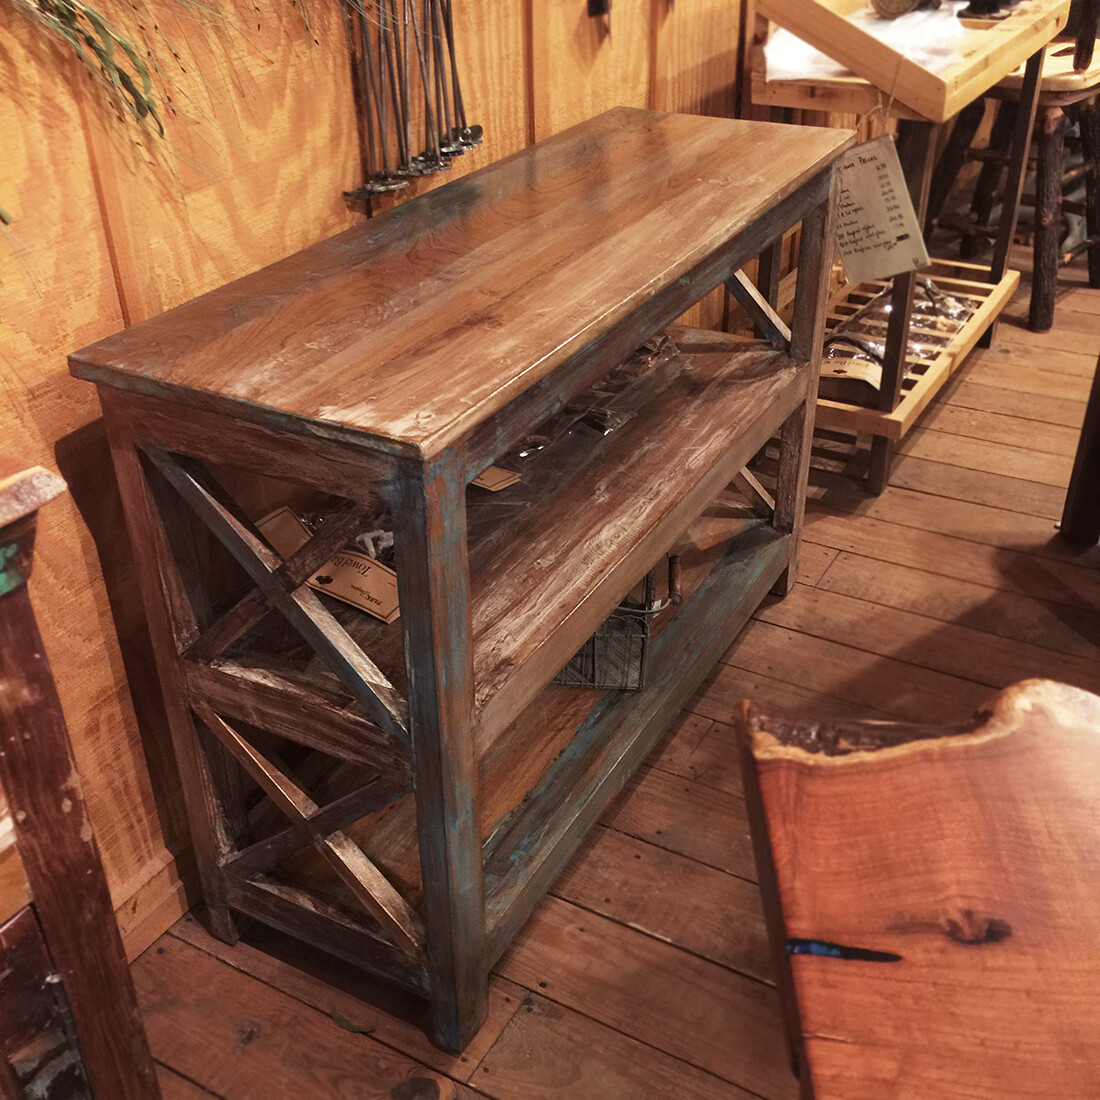 Reclaimed Wood Console Table with 3 Shelves